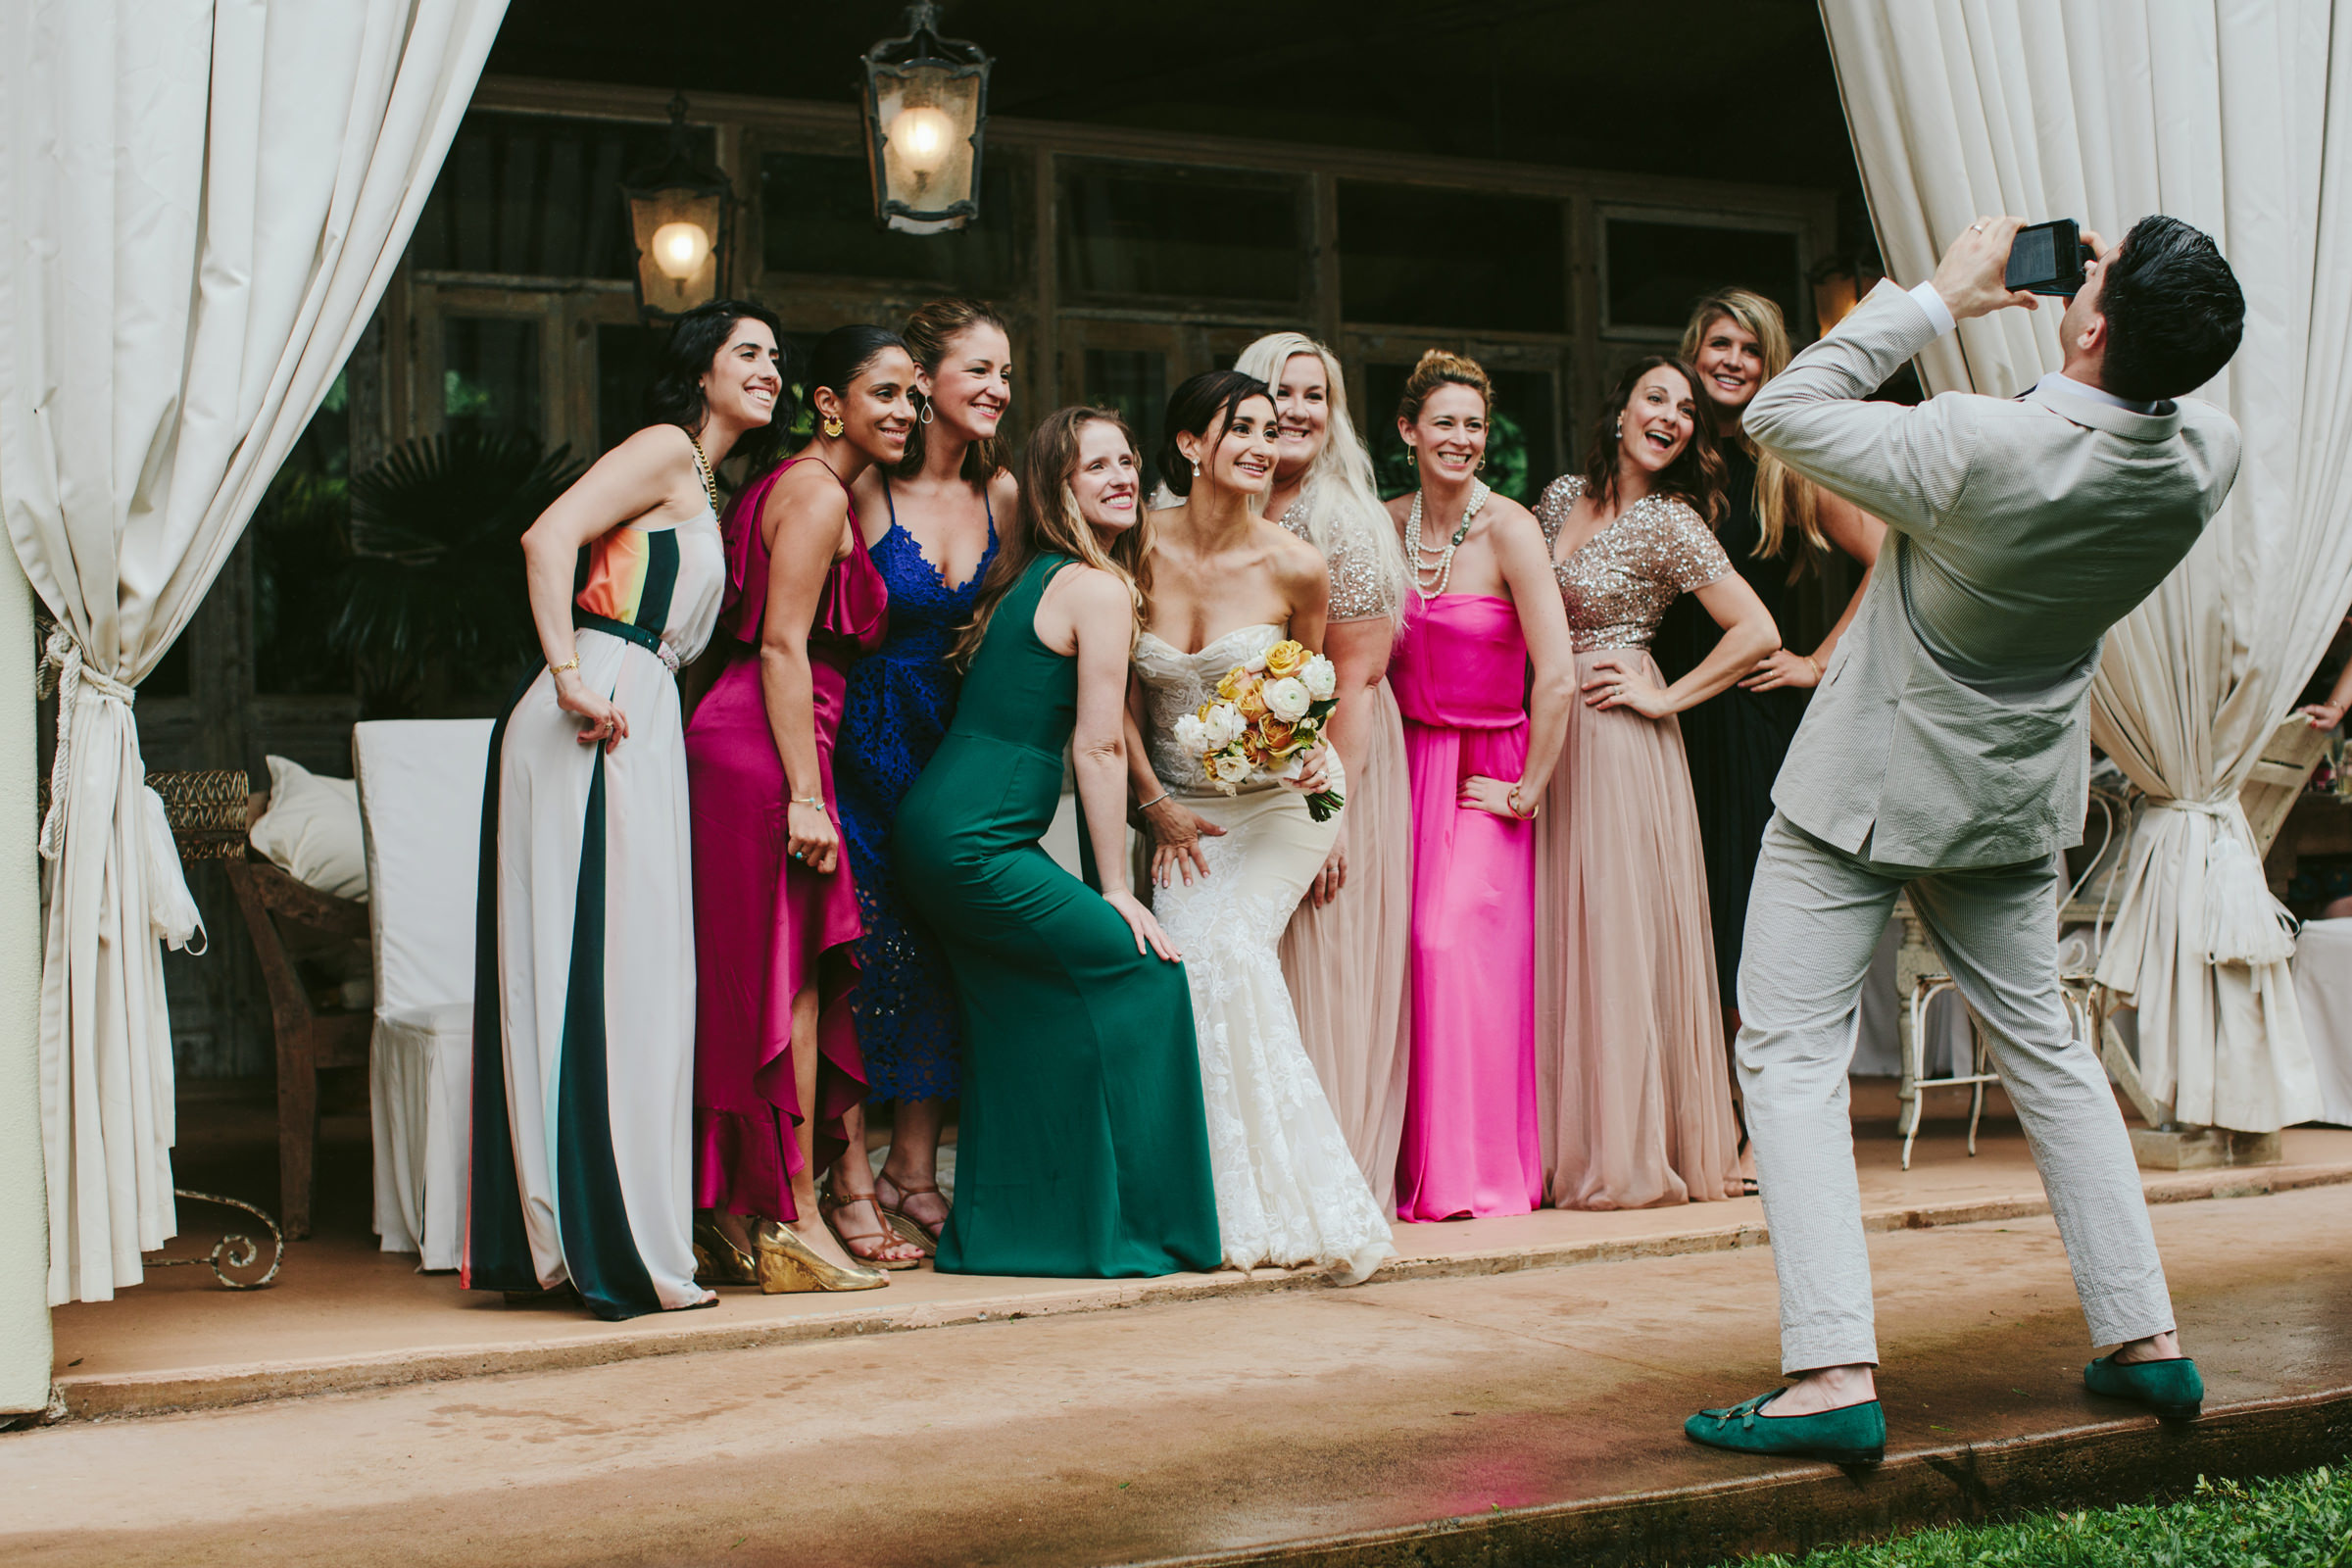 Groom leans back to take photo of bridal party - photo by Melia Lucida